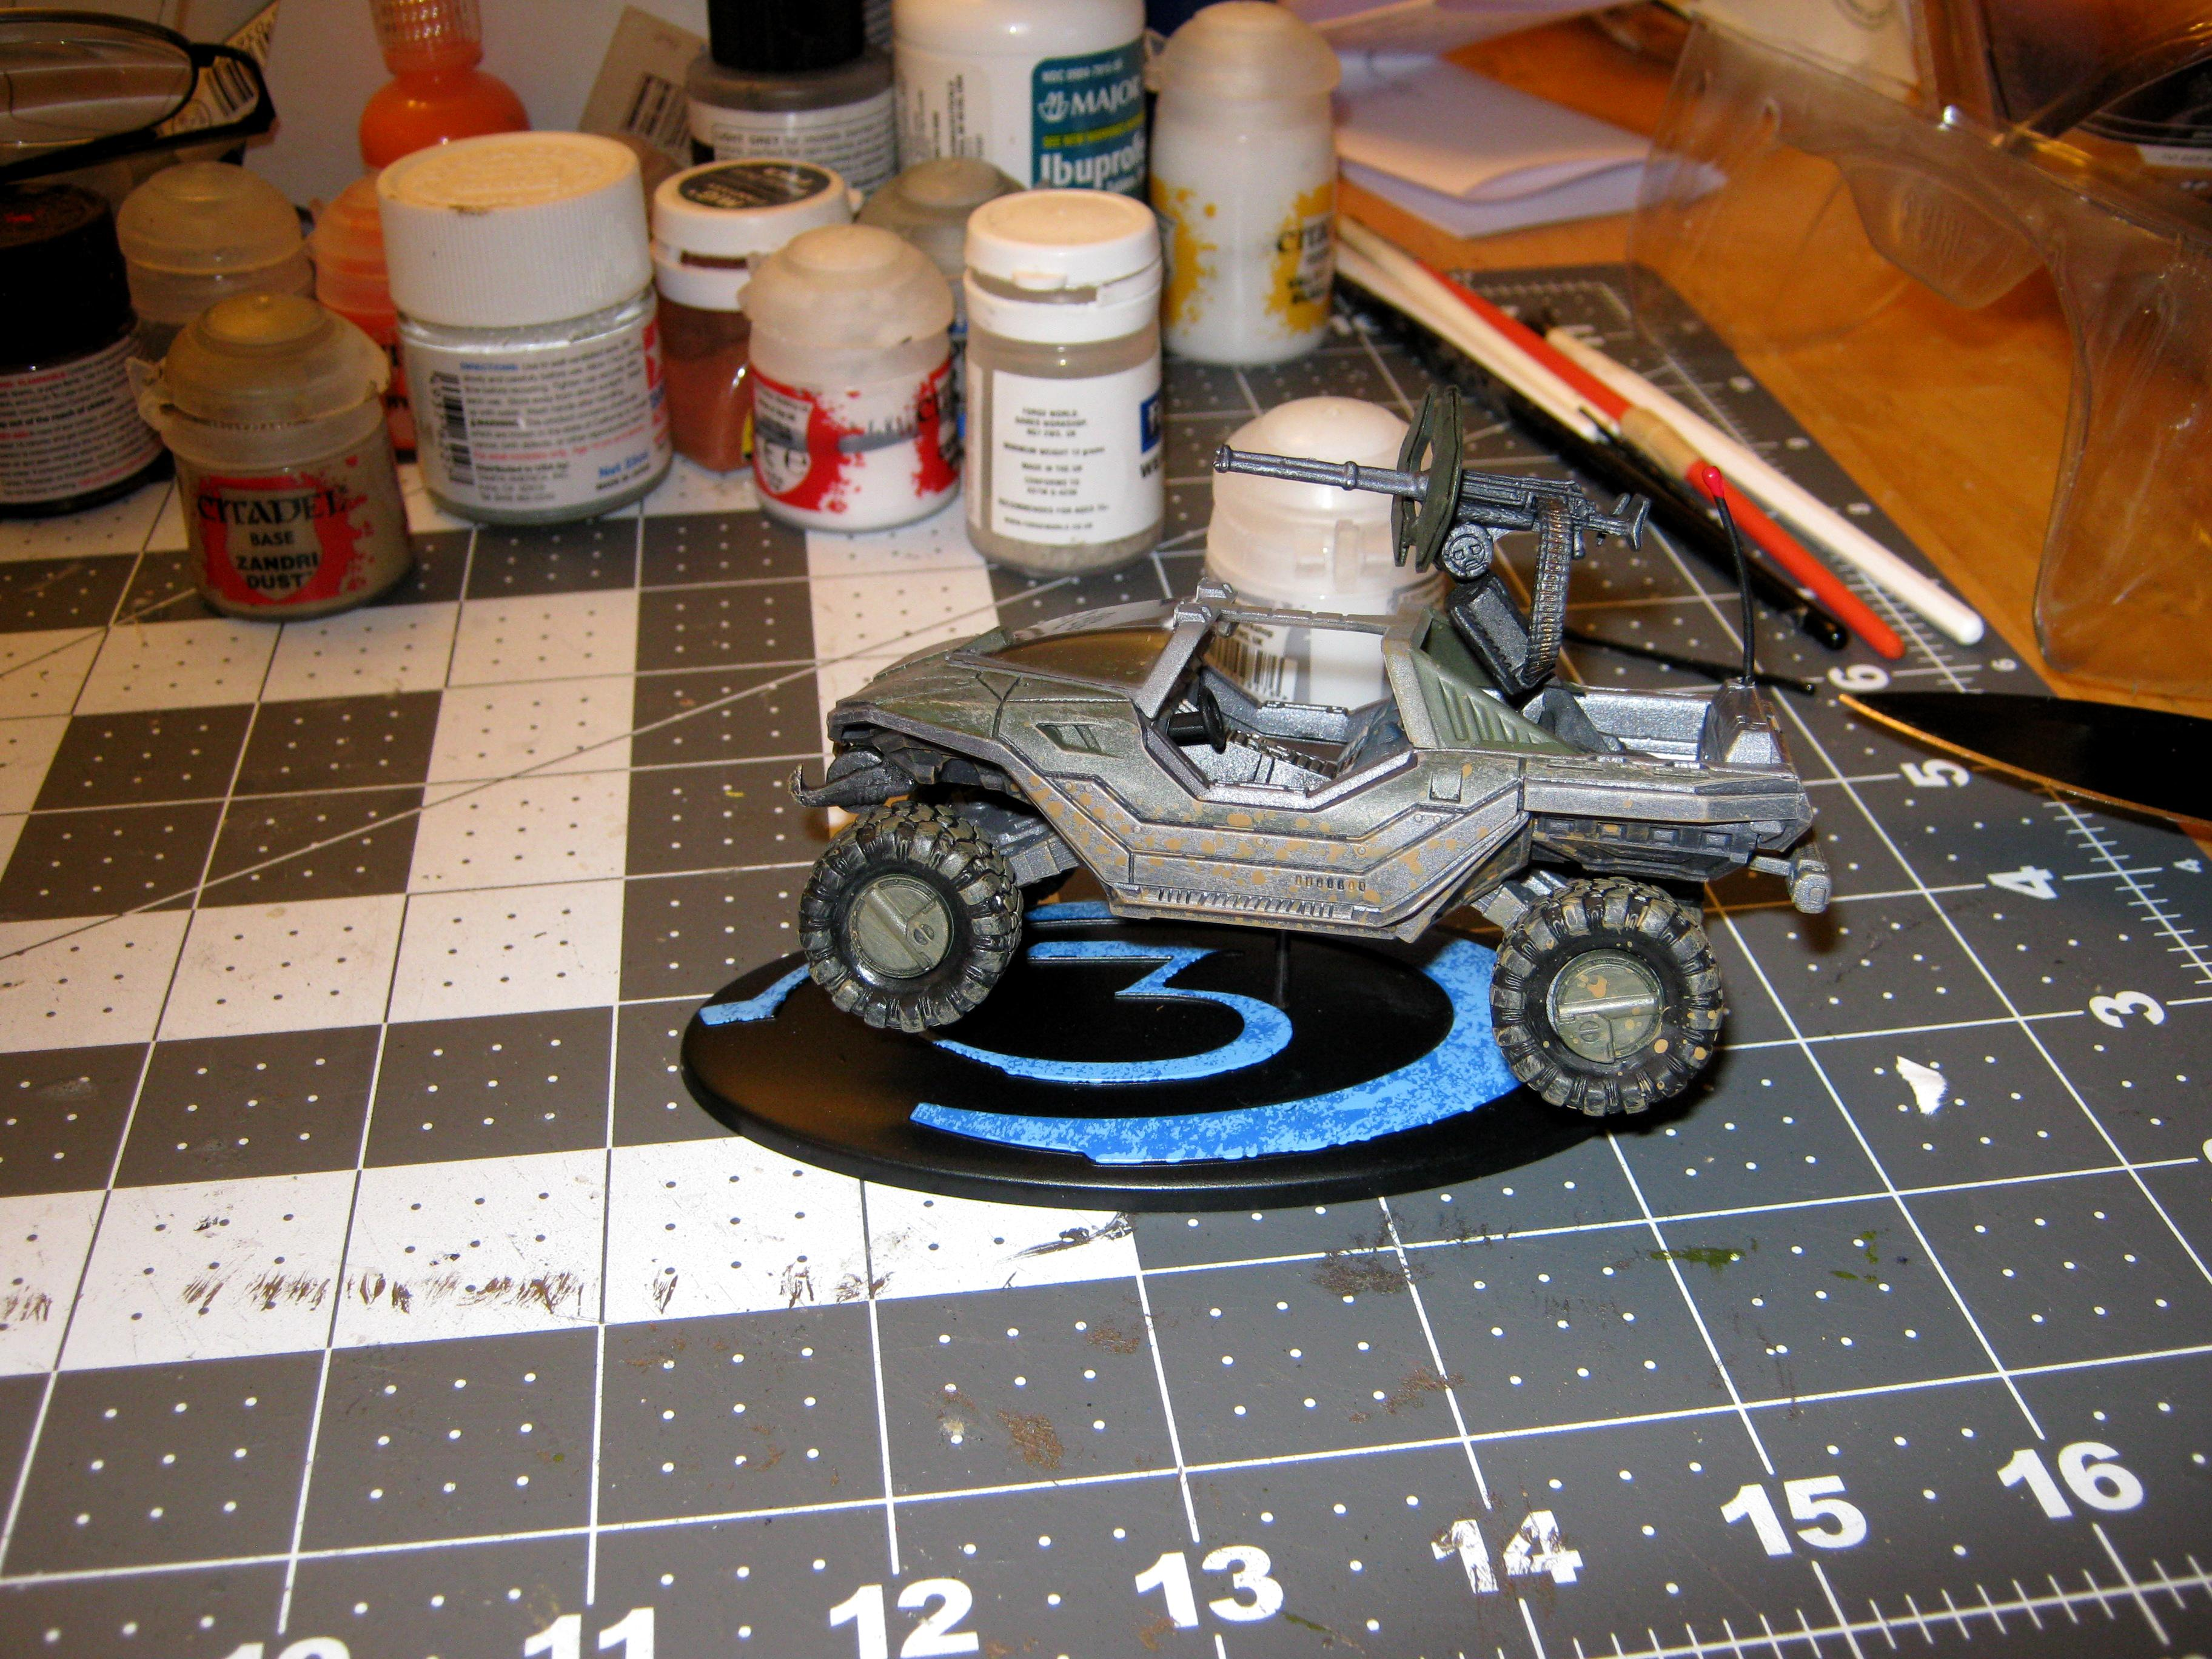 4x4, Counts As, Fast Attack, Halo, Halo 3, High Mobility Vehicle, Imperial, Jeep, M12, Mcfarlane Toys, Recon Vehicle, Scout Vehicle, Toy, Unsc, Warthog